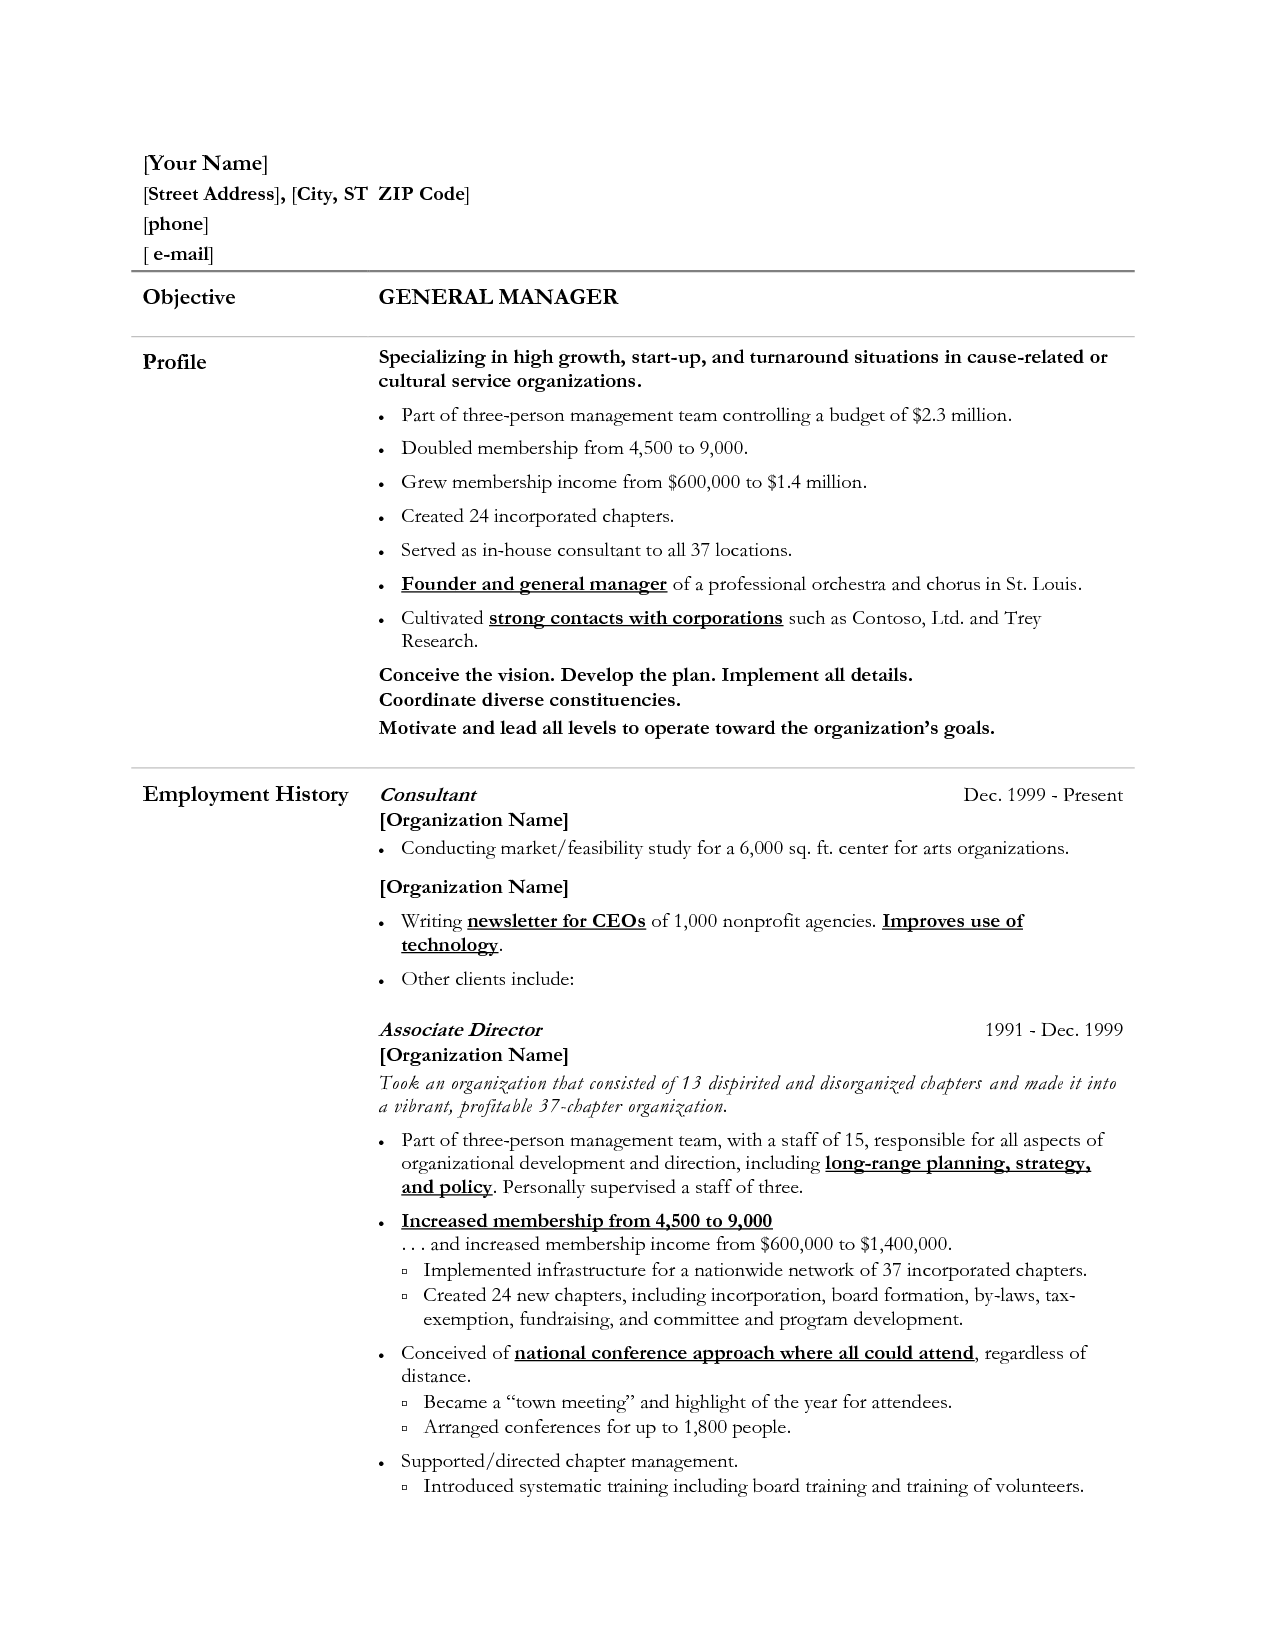 resume objective event manager job general templates for any sample basic throughout simple best free home design idea inspiration - Simple Objectives For Resume